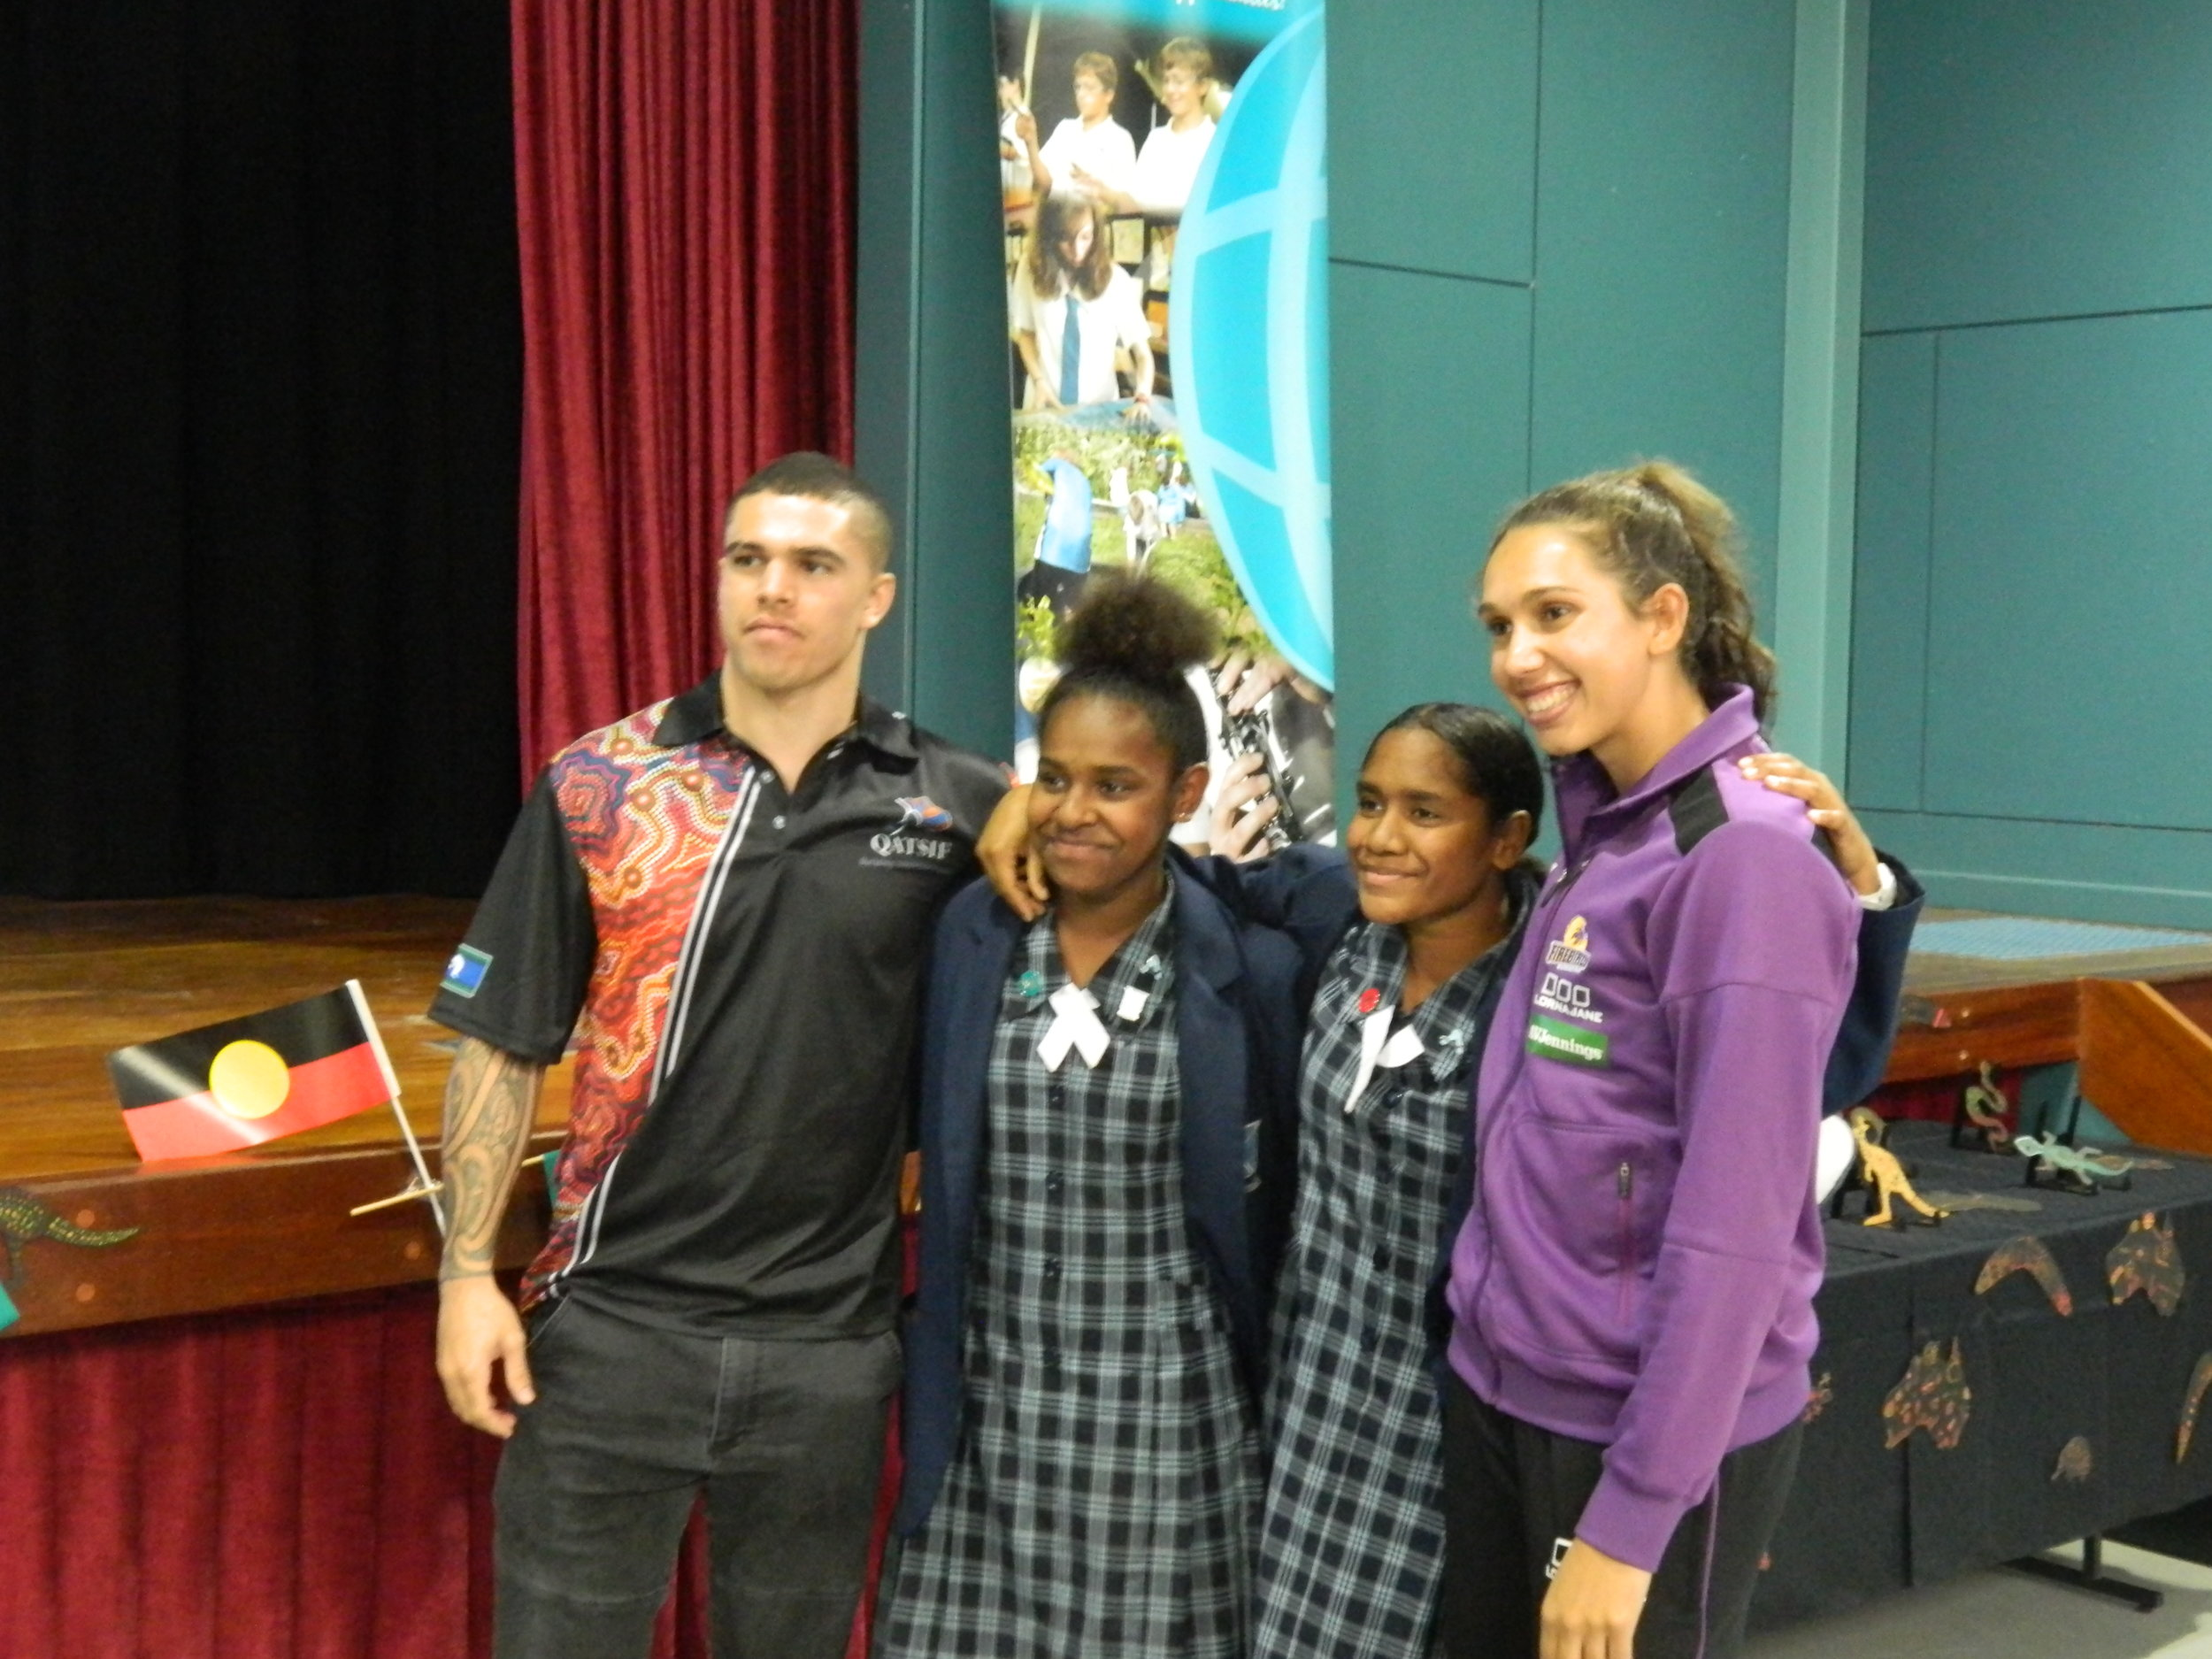 Jemma and Commonwealth Games boxer, Clay Waterman with Ipswich Girls' Grammar School girls.